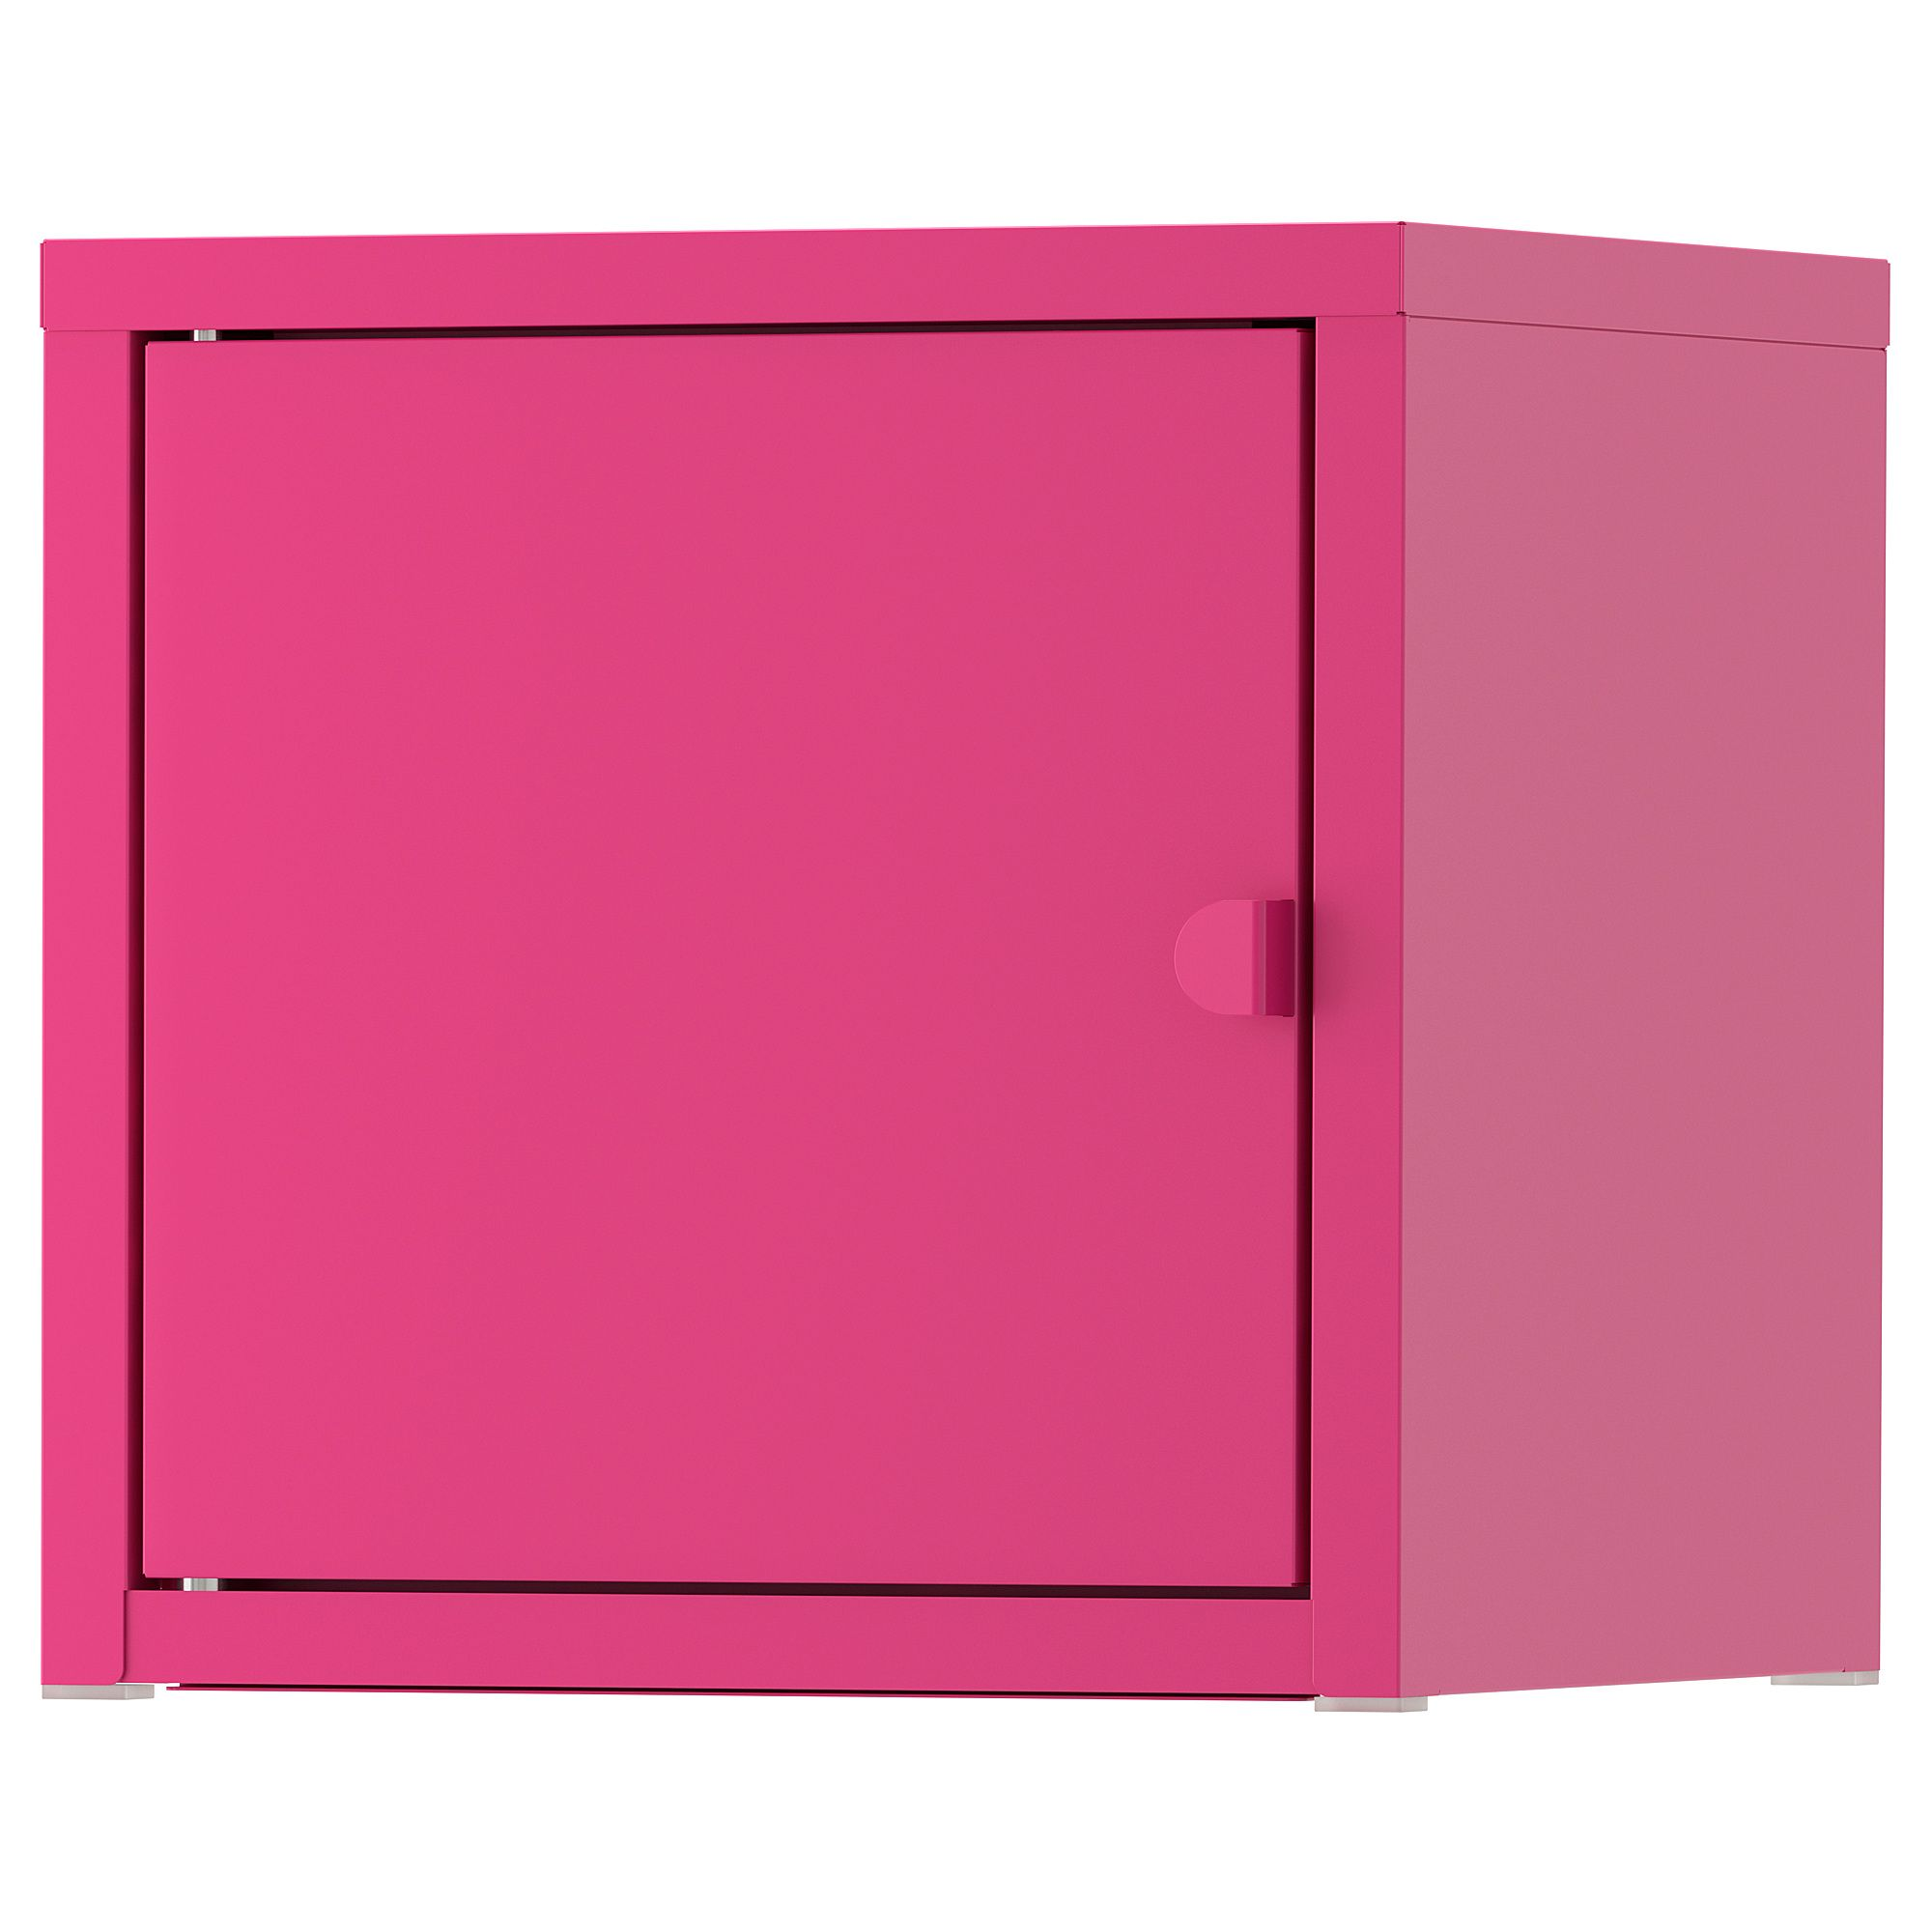 Lixhult Schrank Metall Rosa In 2018 Pink Yellow Pinterest